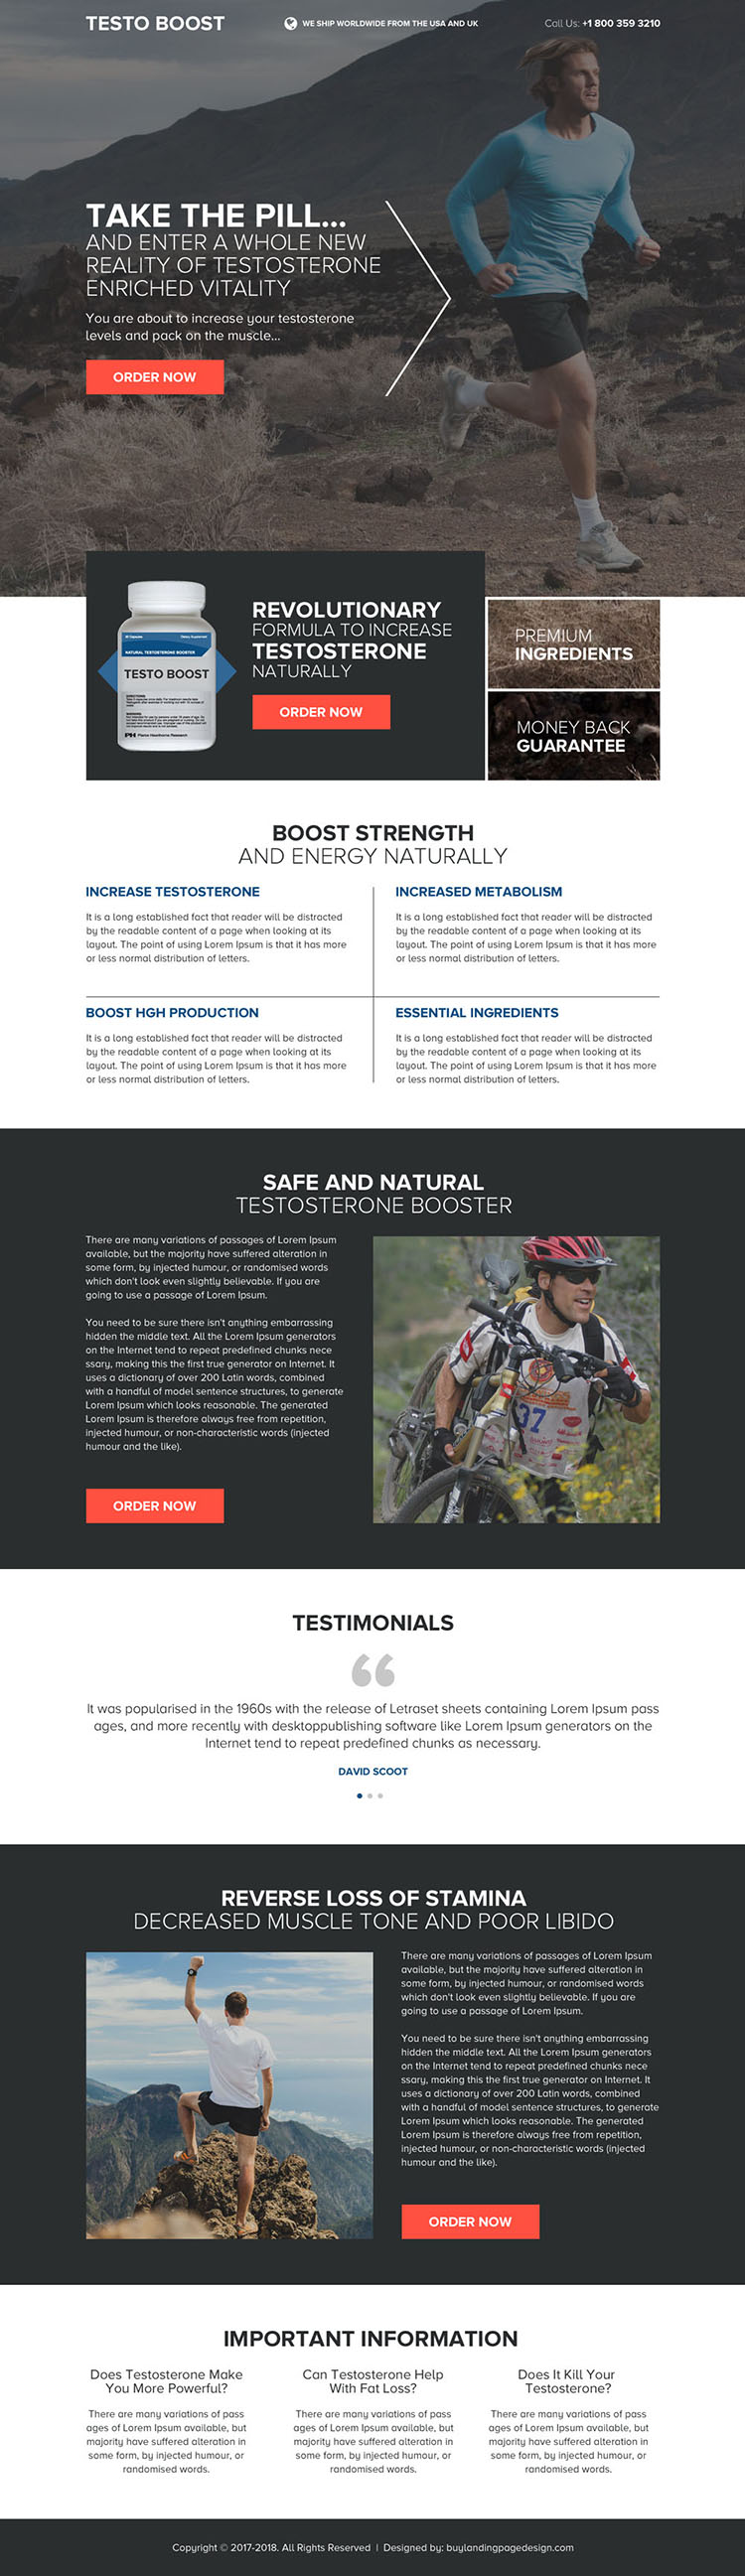 best low testosterone booster pills selling landing page design